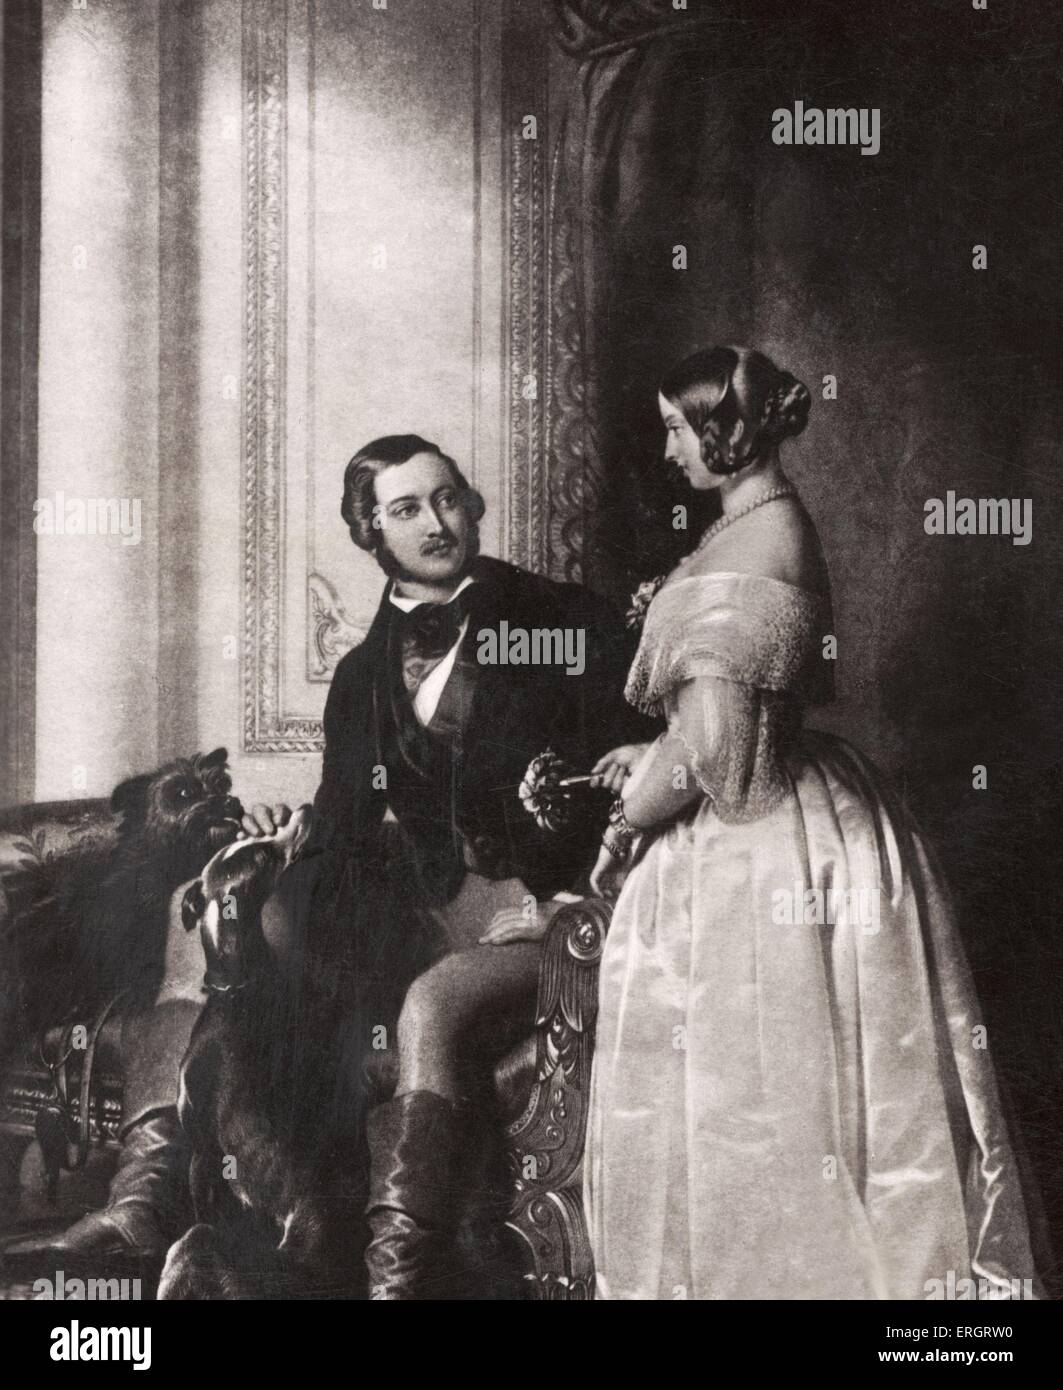 Queen Victoria & Prince Albert - portrait with game. 19th Century - Stock Image